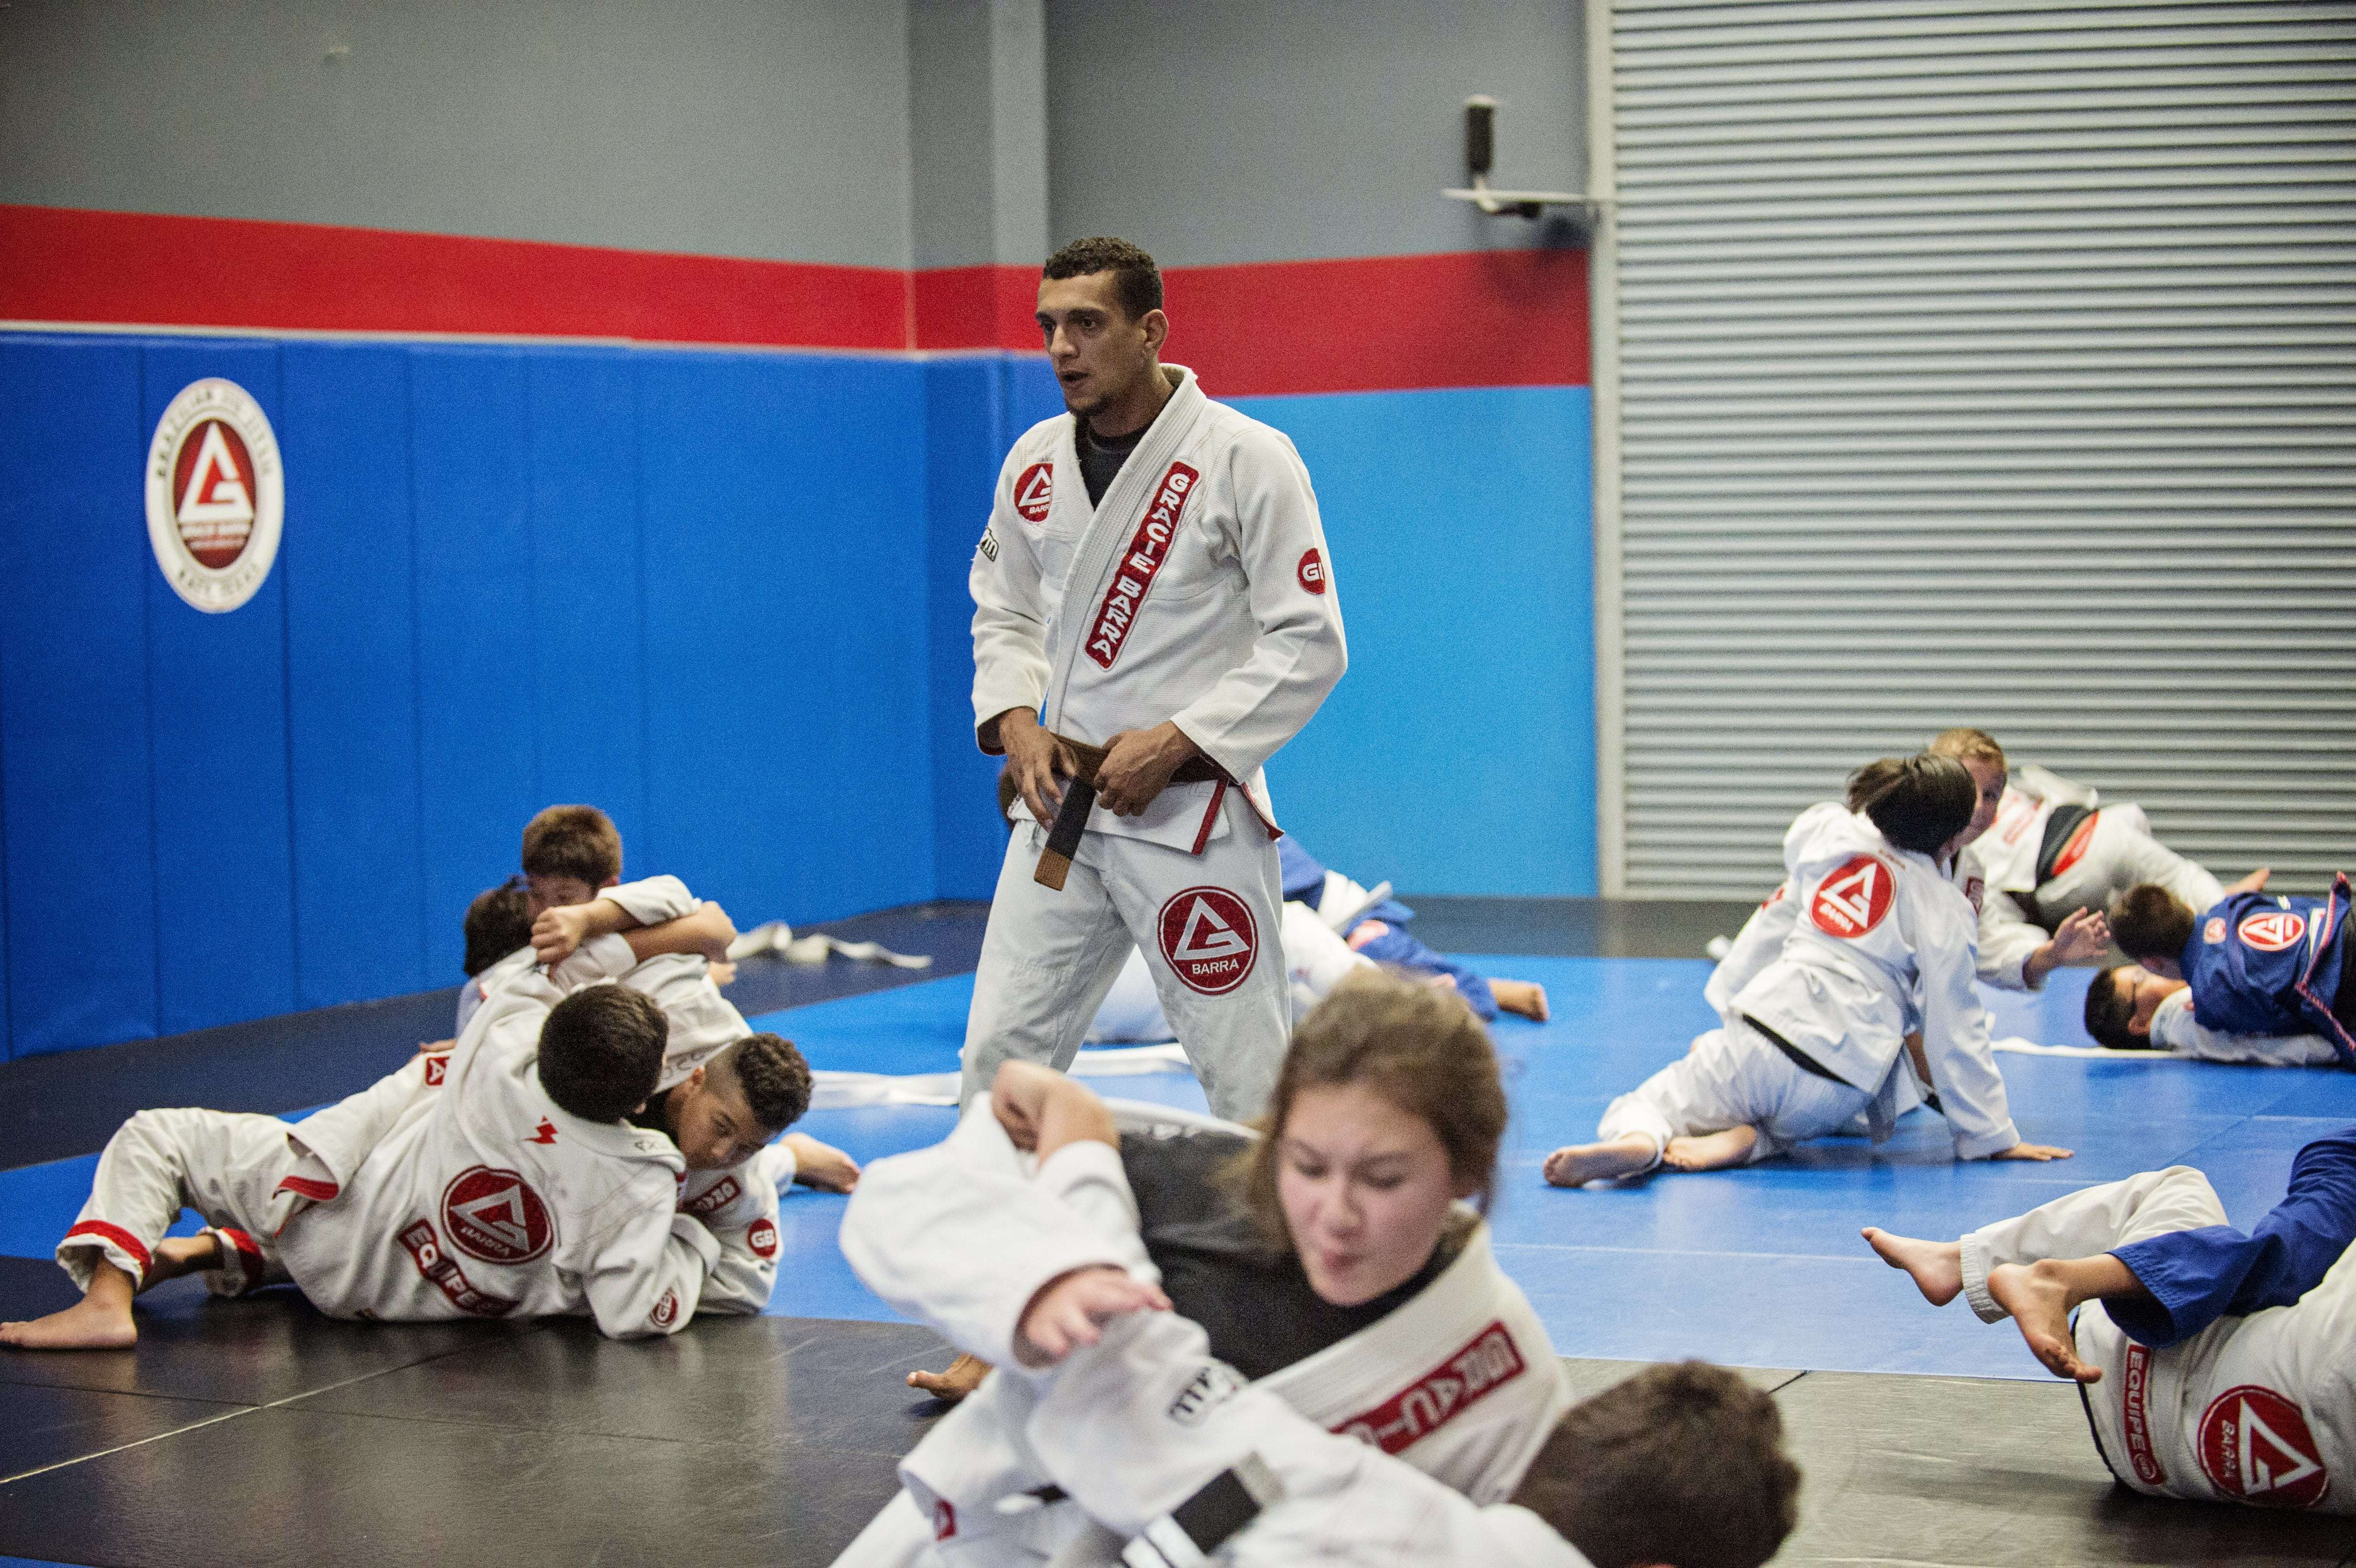 Gracie Barra Youth Wrestling